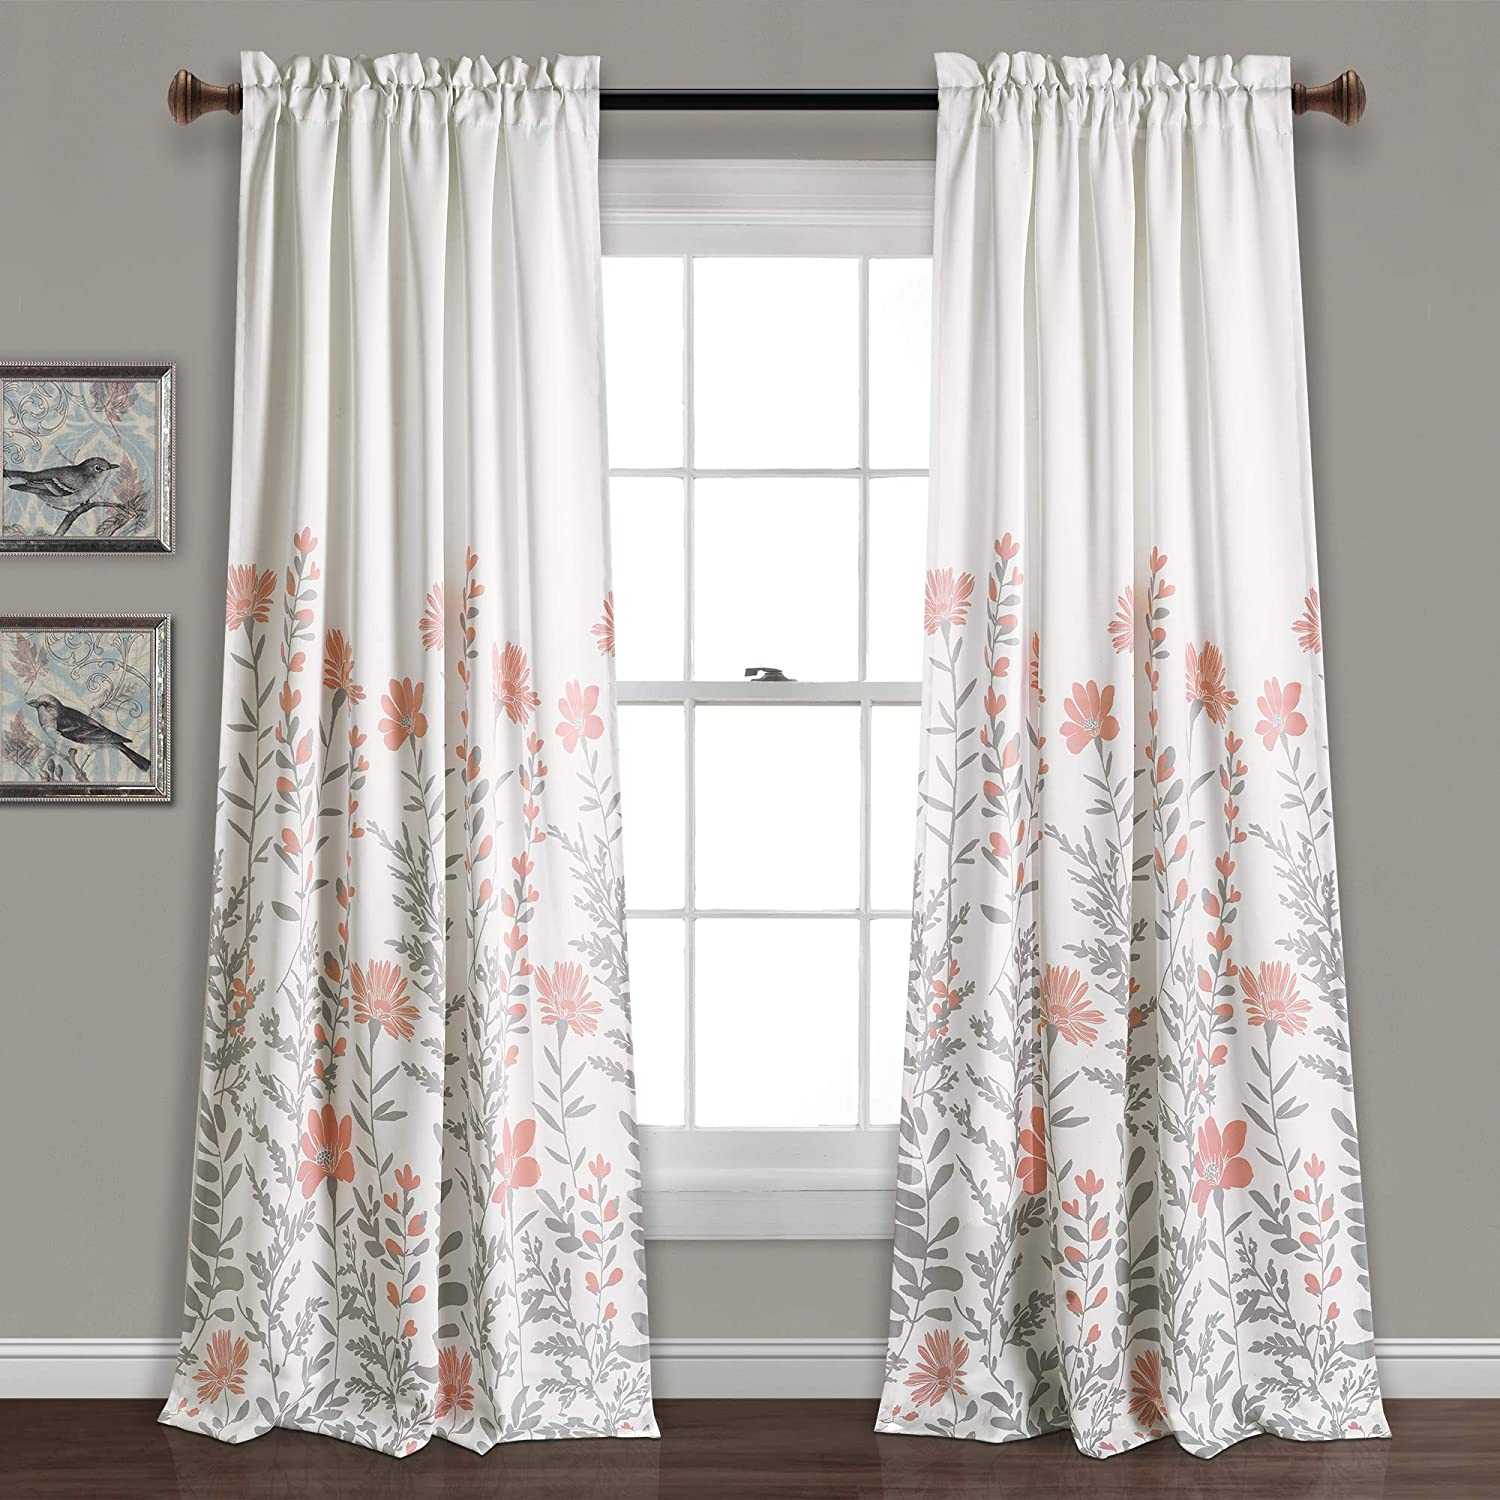 "Lush Decor, Blush Aprile Room Darkening Curtains-Floral Leaf Design Window Panel Drapes Set for Living, Dining, Bedroom (Pair), 84"" x 52"""